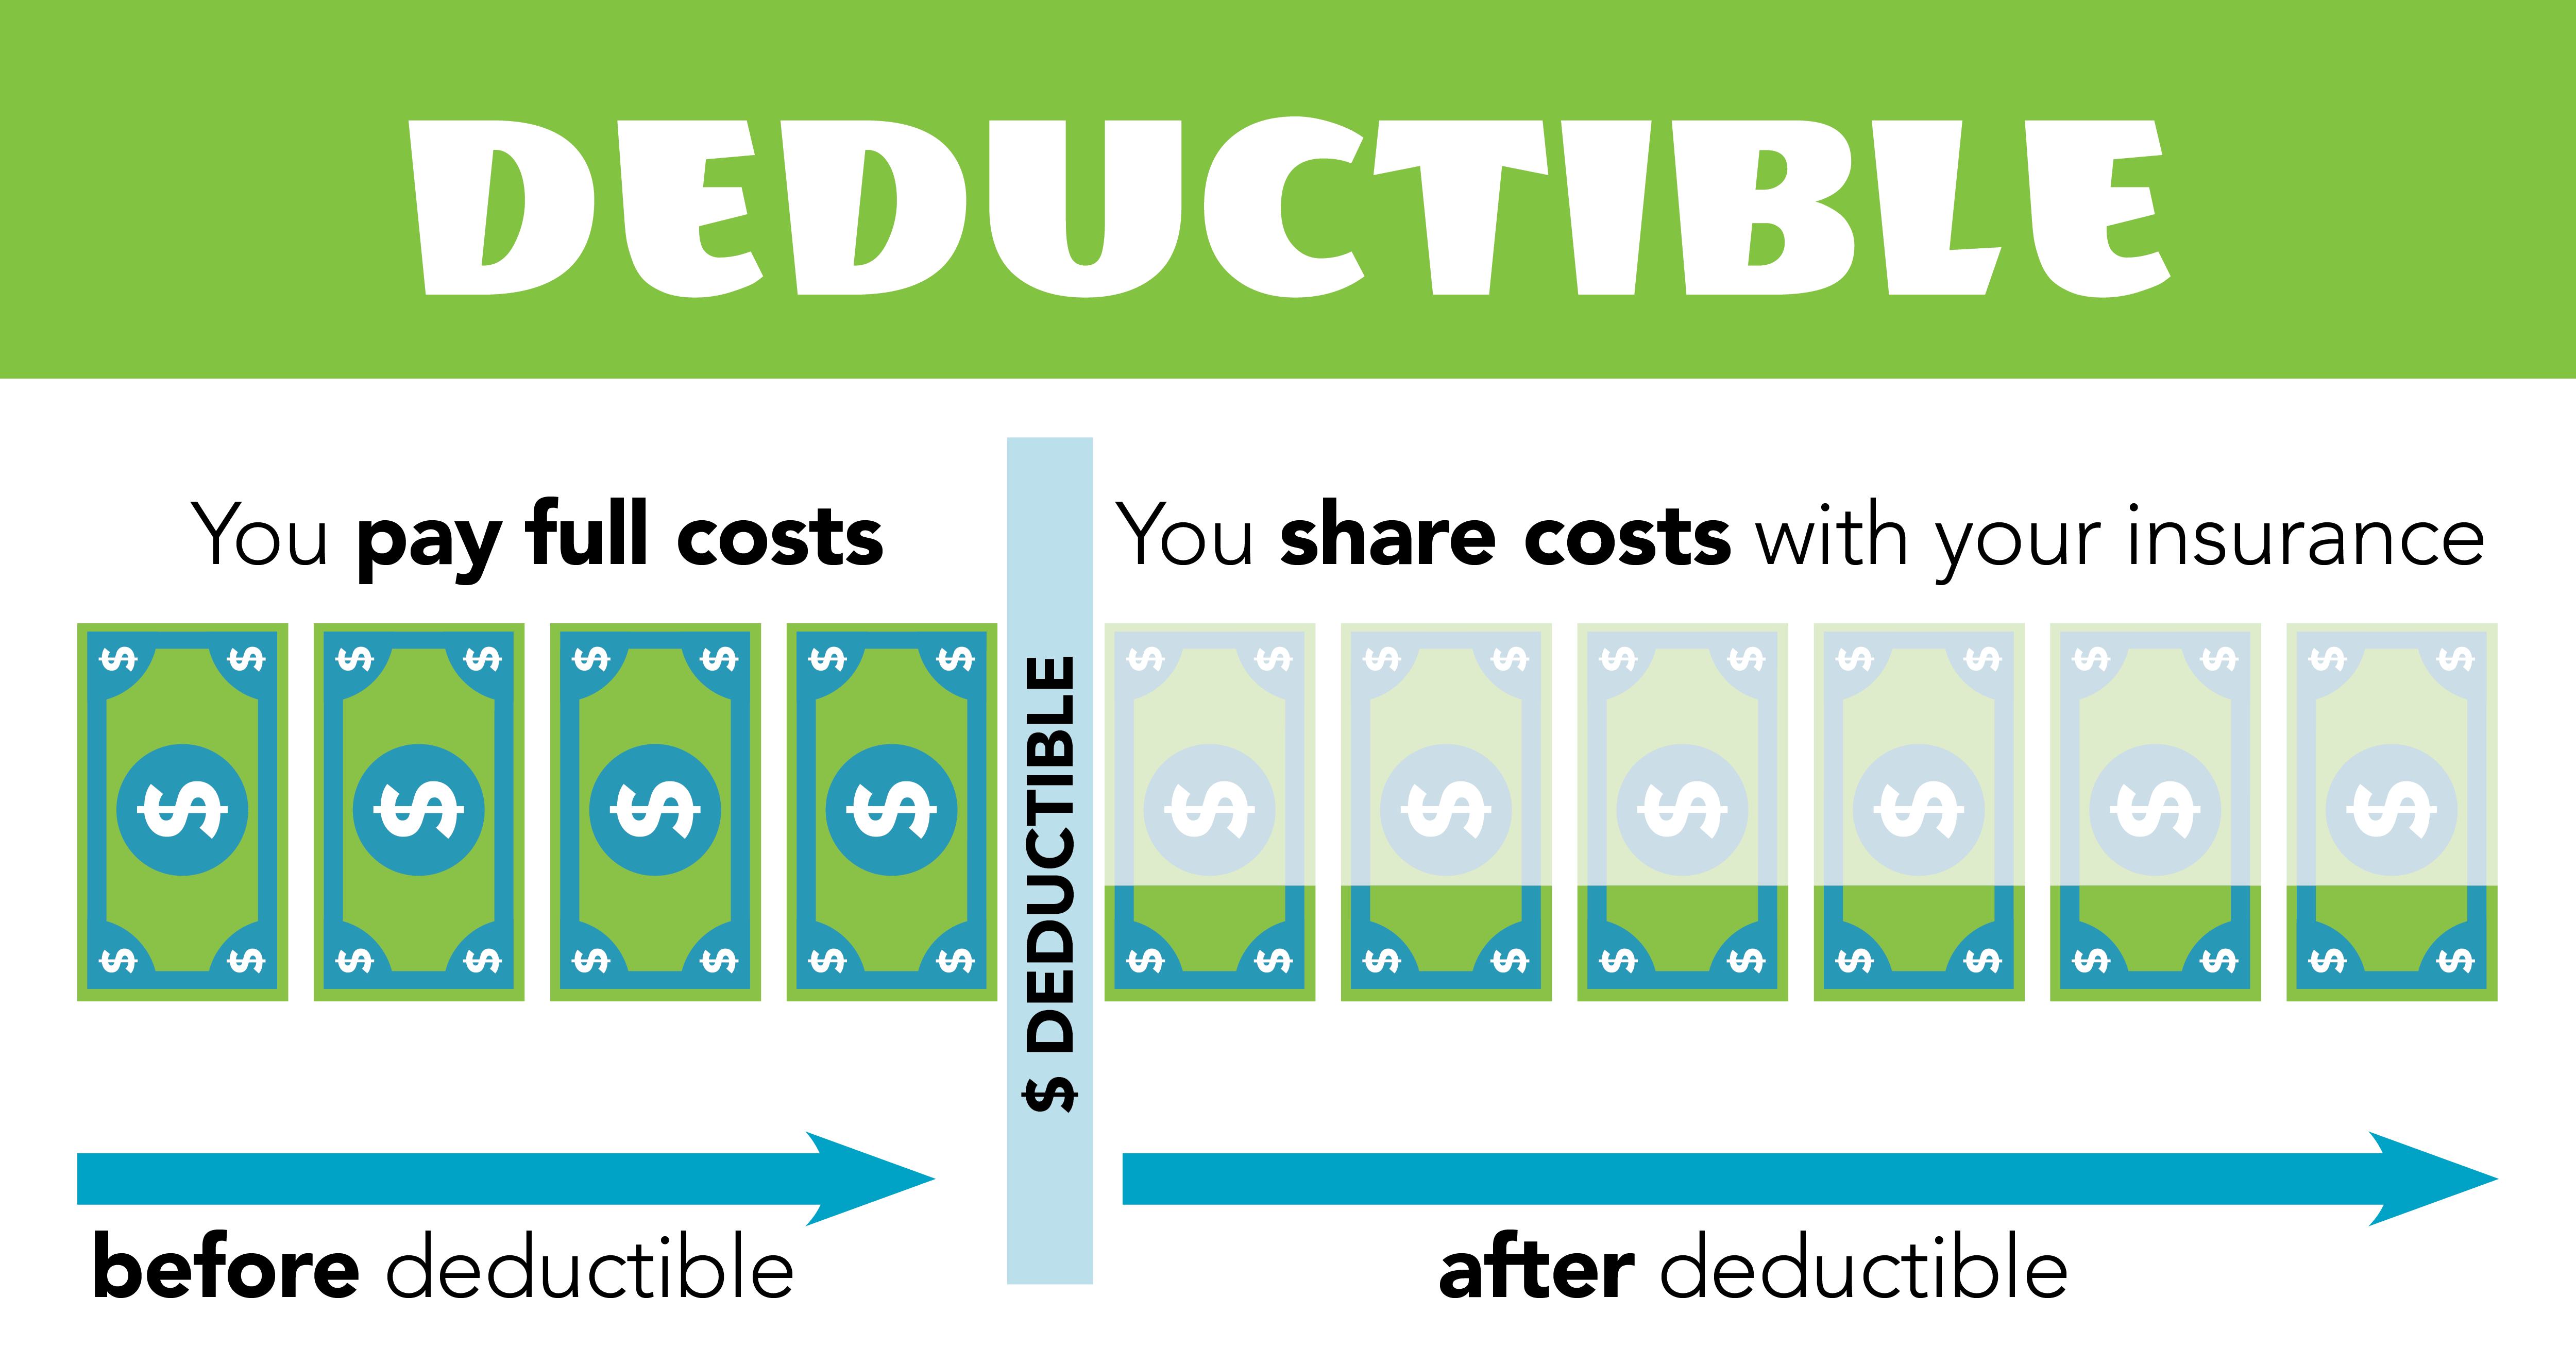 MHC Deductible Chart